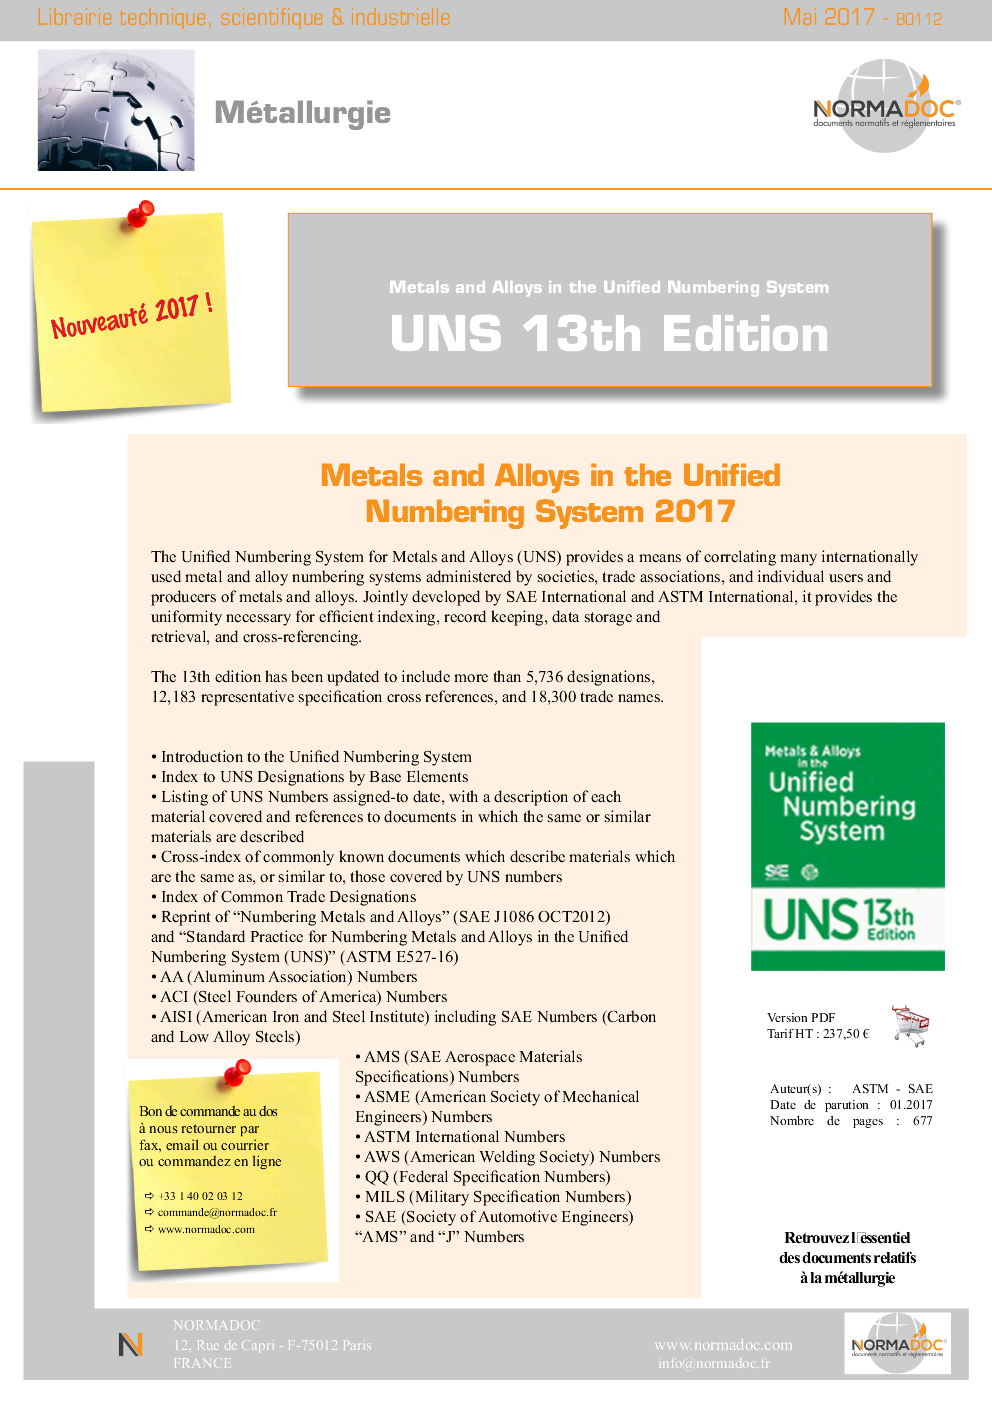 Metals & Alloys in the Unified Numbering System - UNS